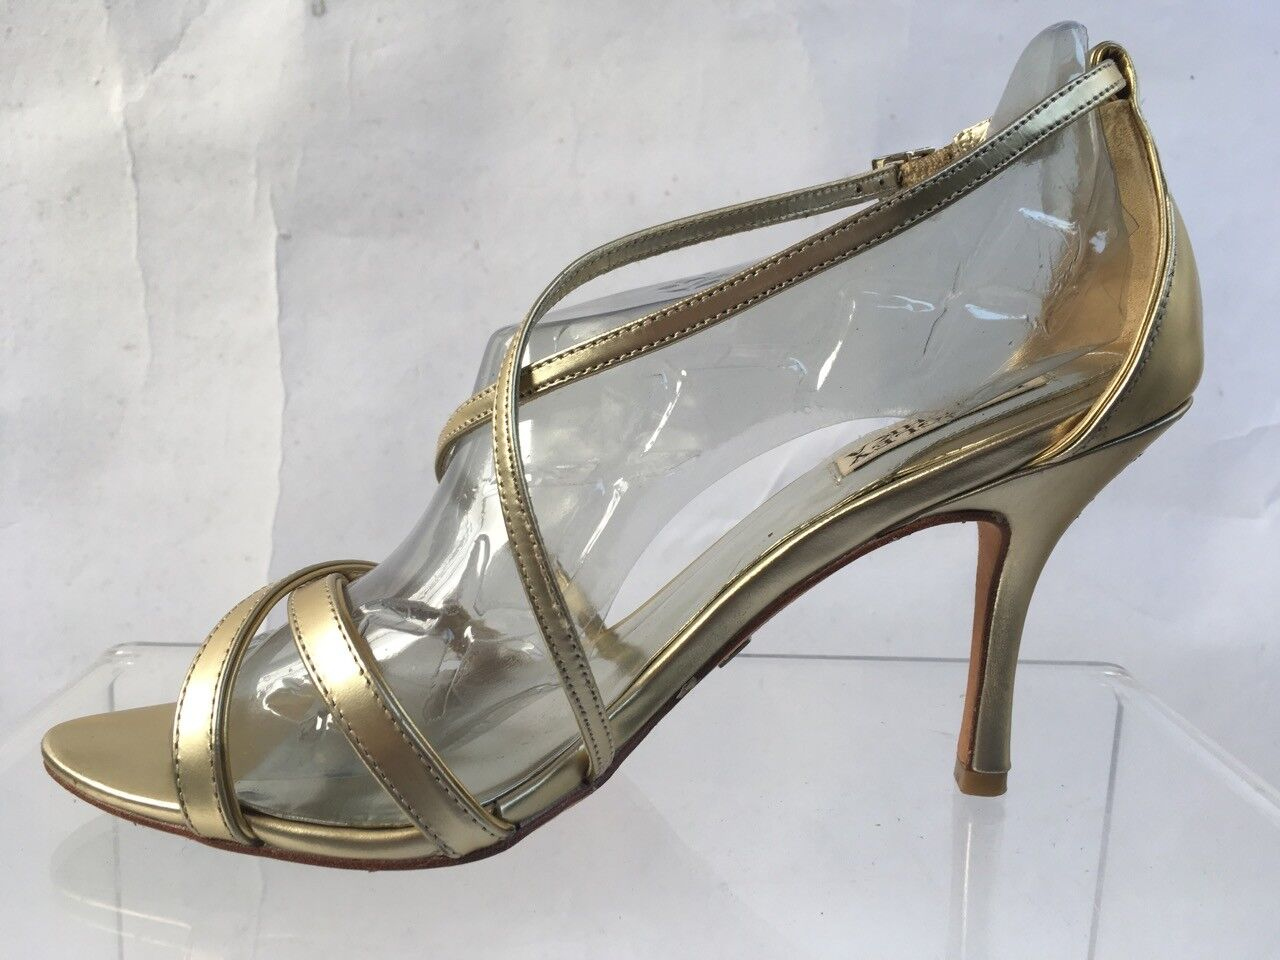 Badgley Mischka Strappy Stiletto Heels Sole Sandale Metallic Gold Leder Sole Heels 9M 40f12b